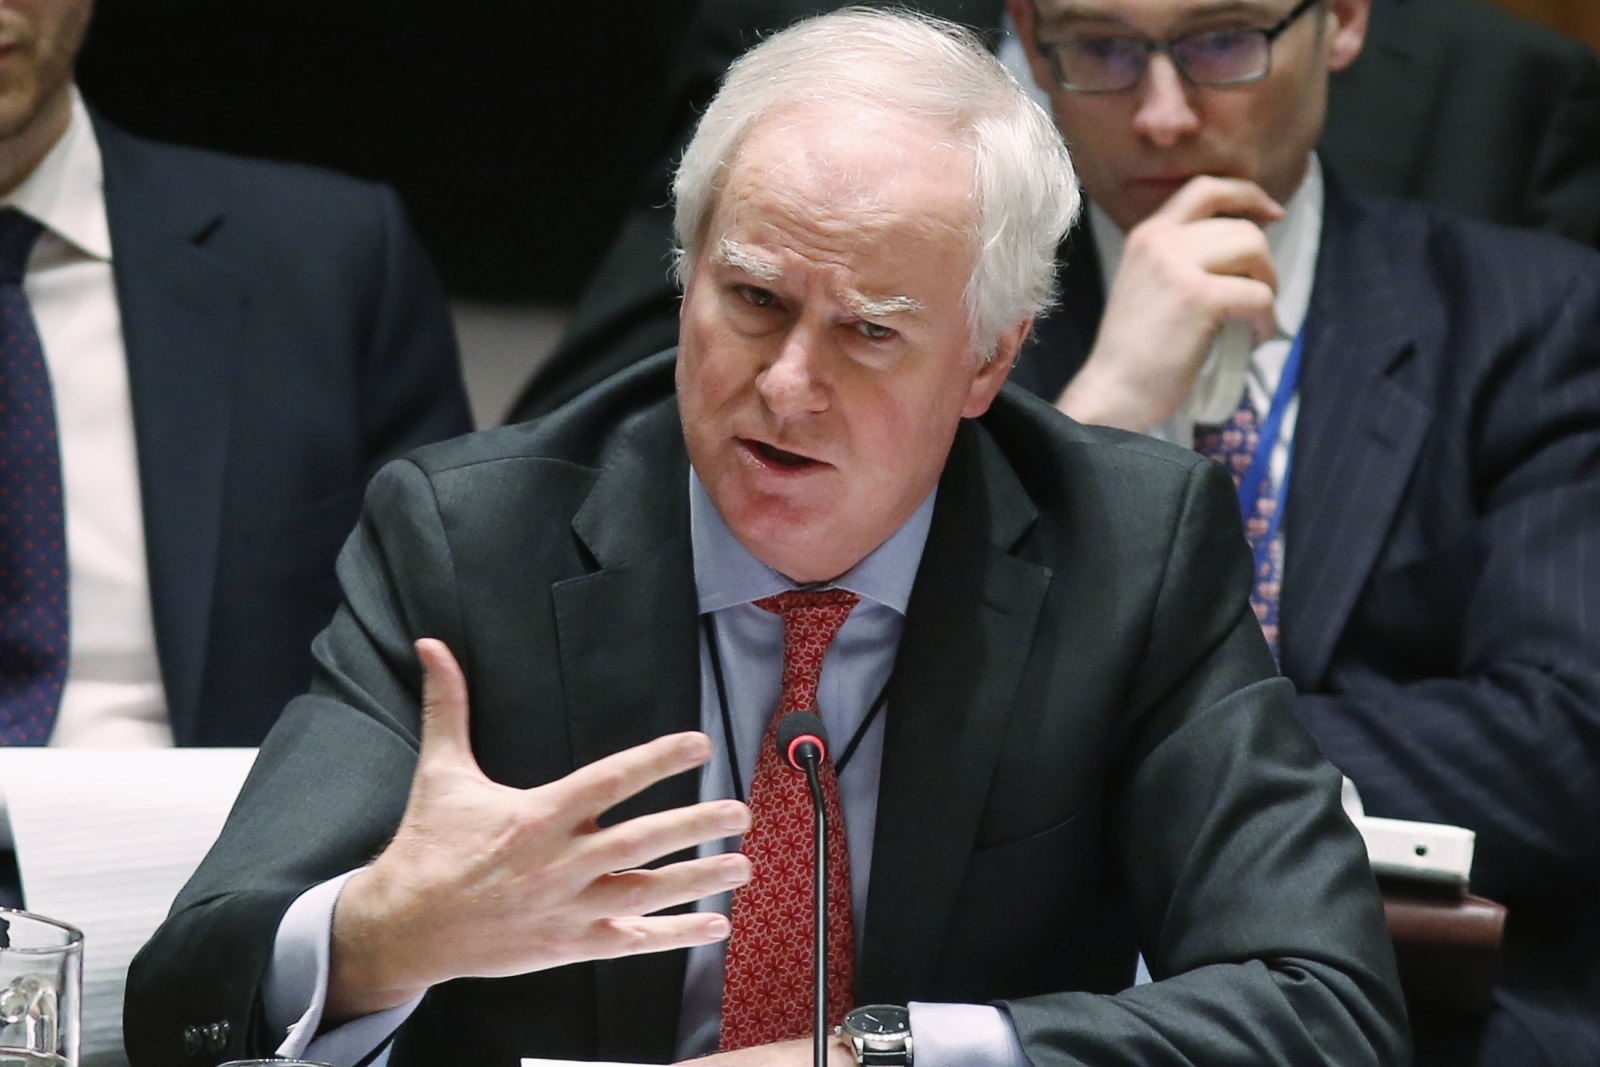 Sir Mark Lyall Grant the UK national security adviiser is leaving his post after just 18 months